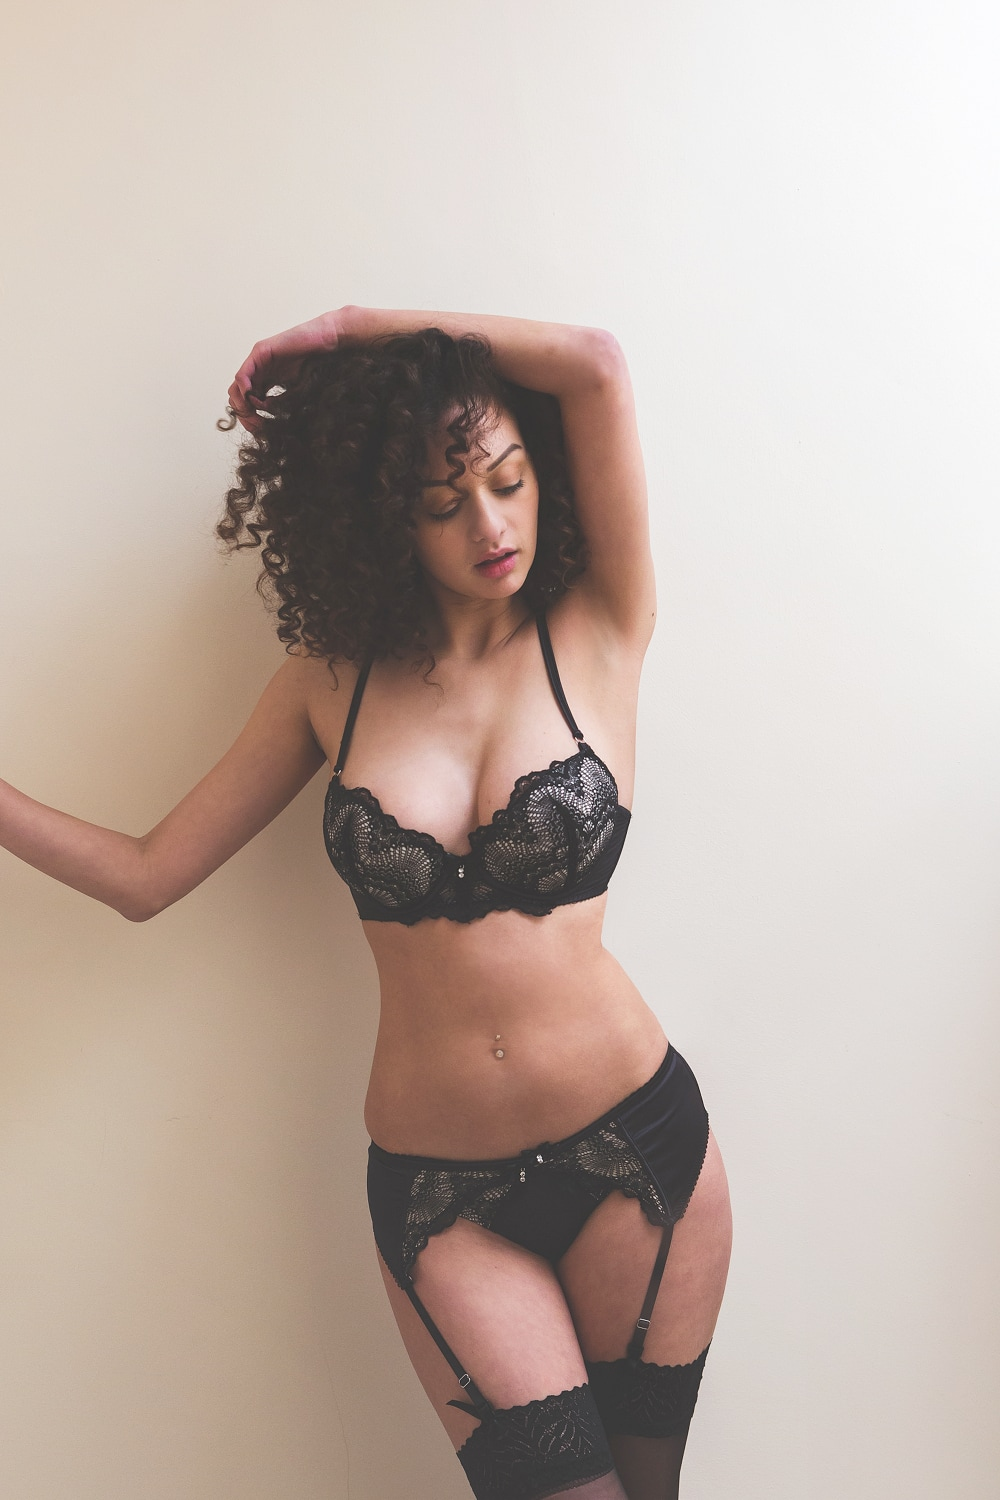 Photo of model in black lingerie